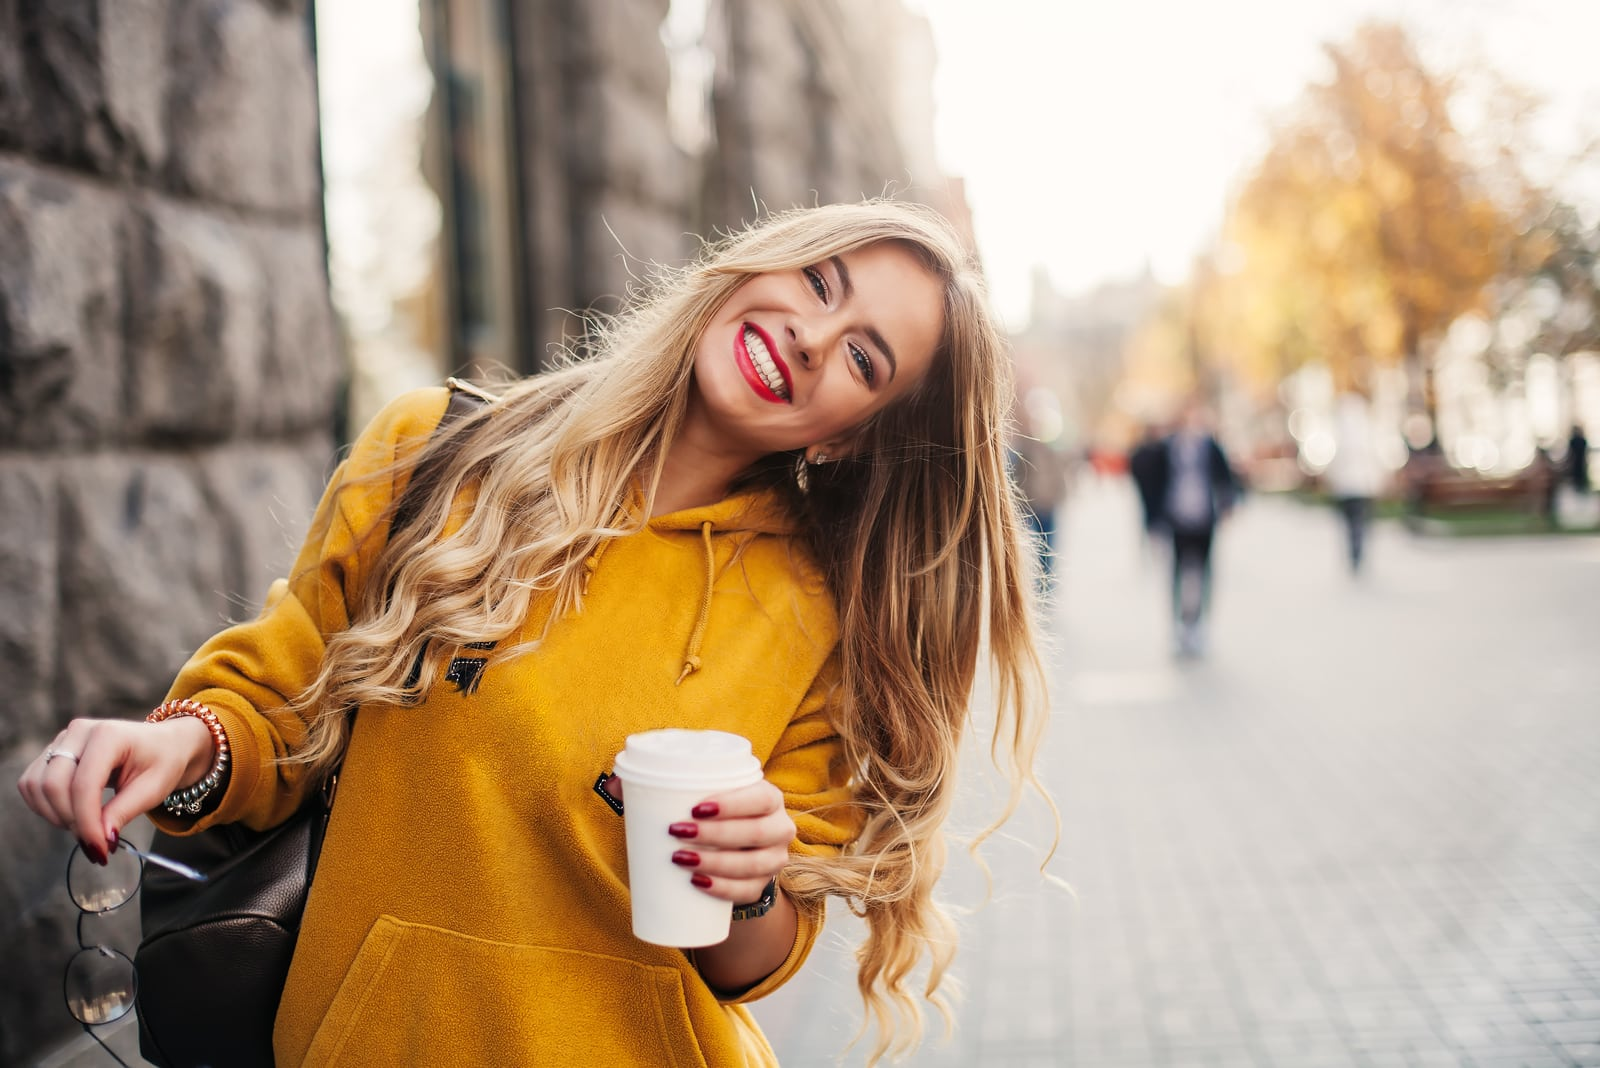 happy woman smiling on the street